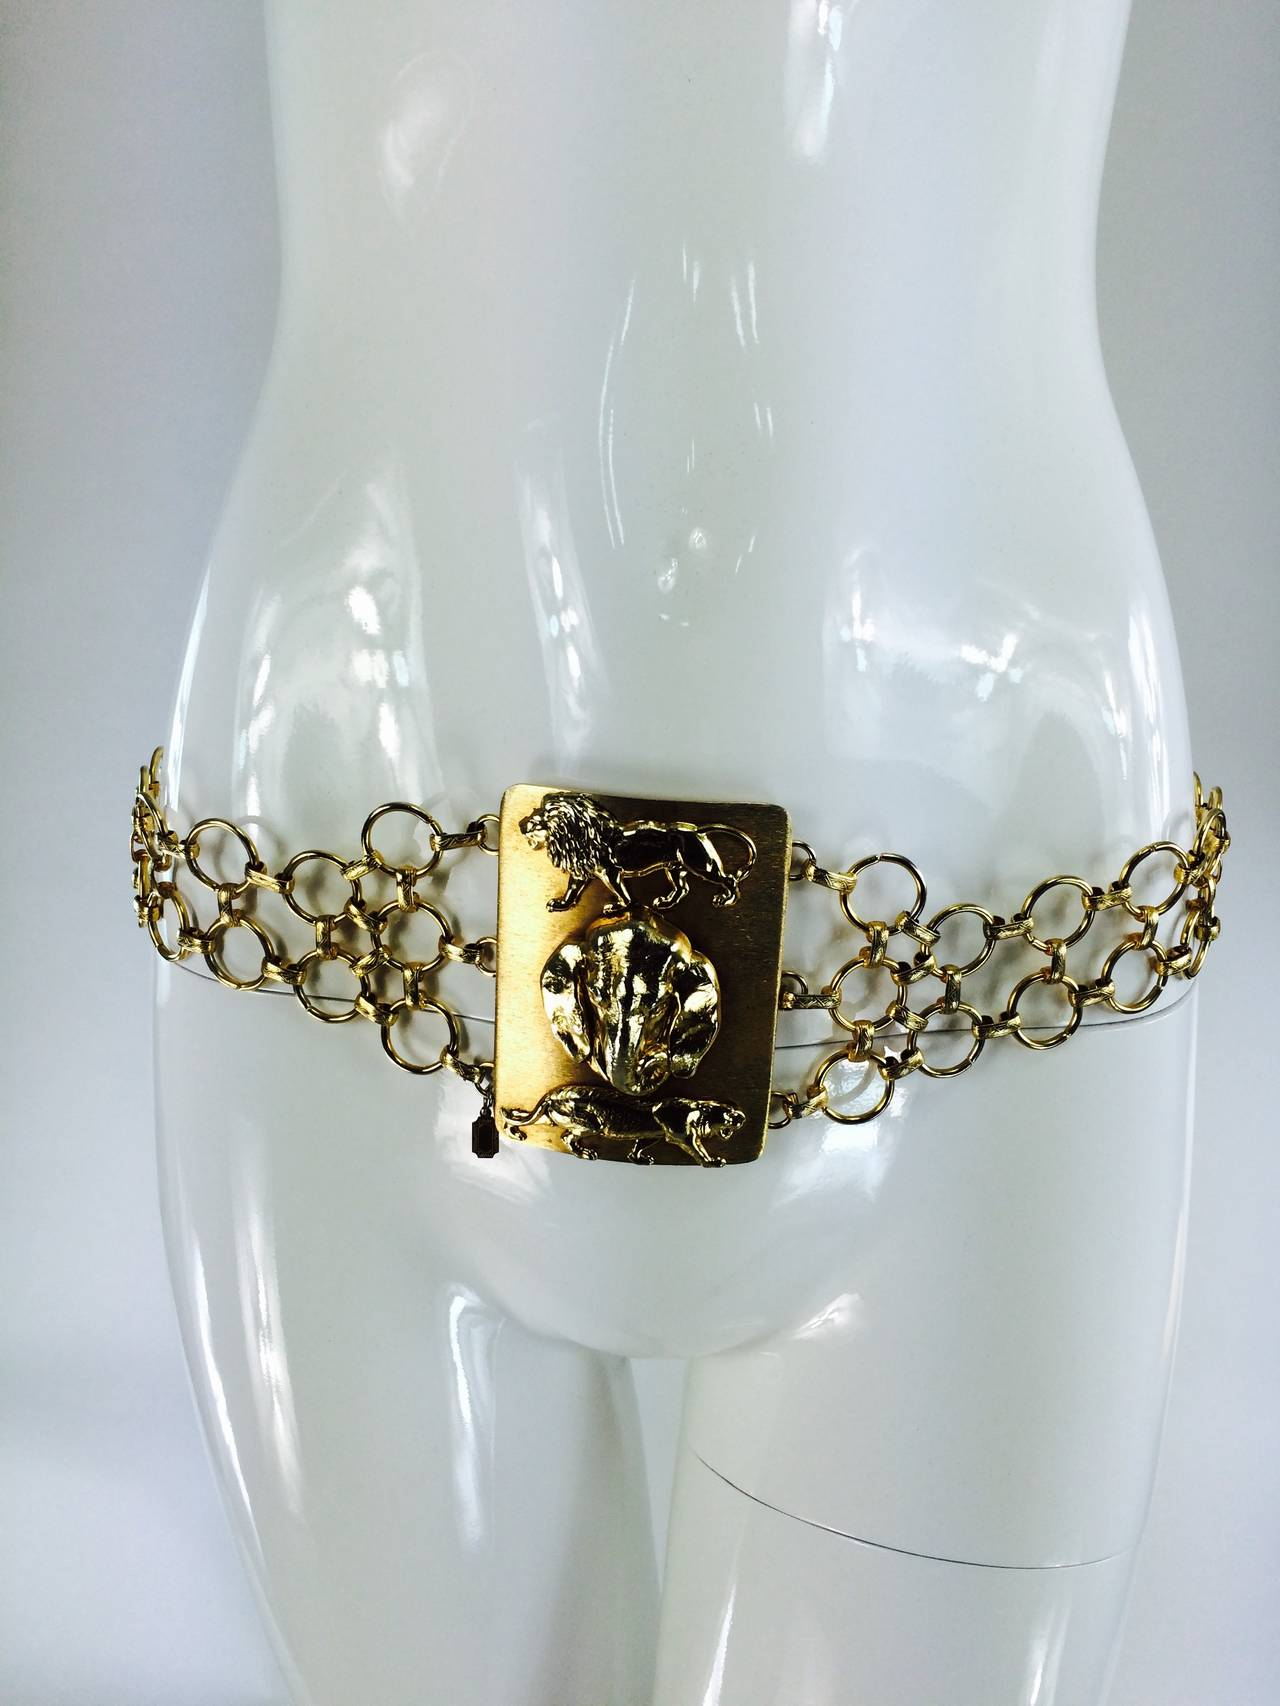 1970s Christian Dior jungle safari chain belt 2